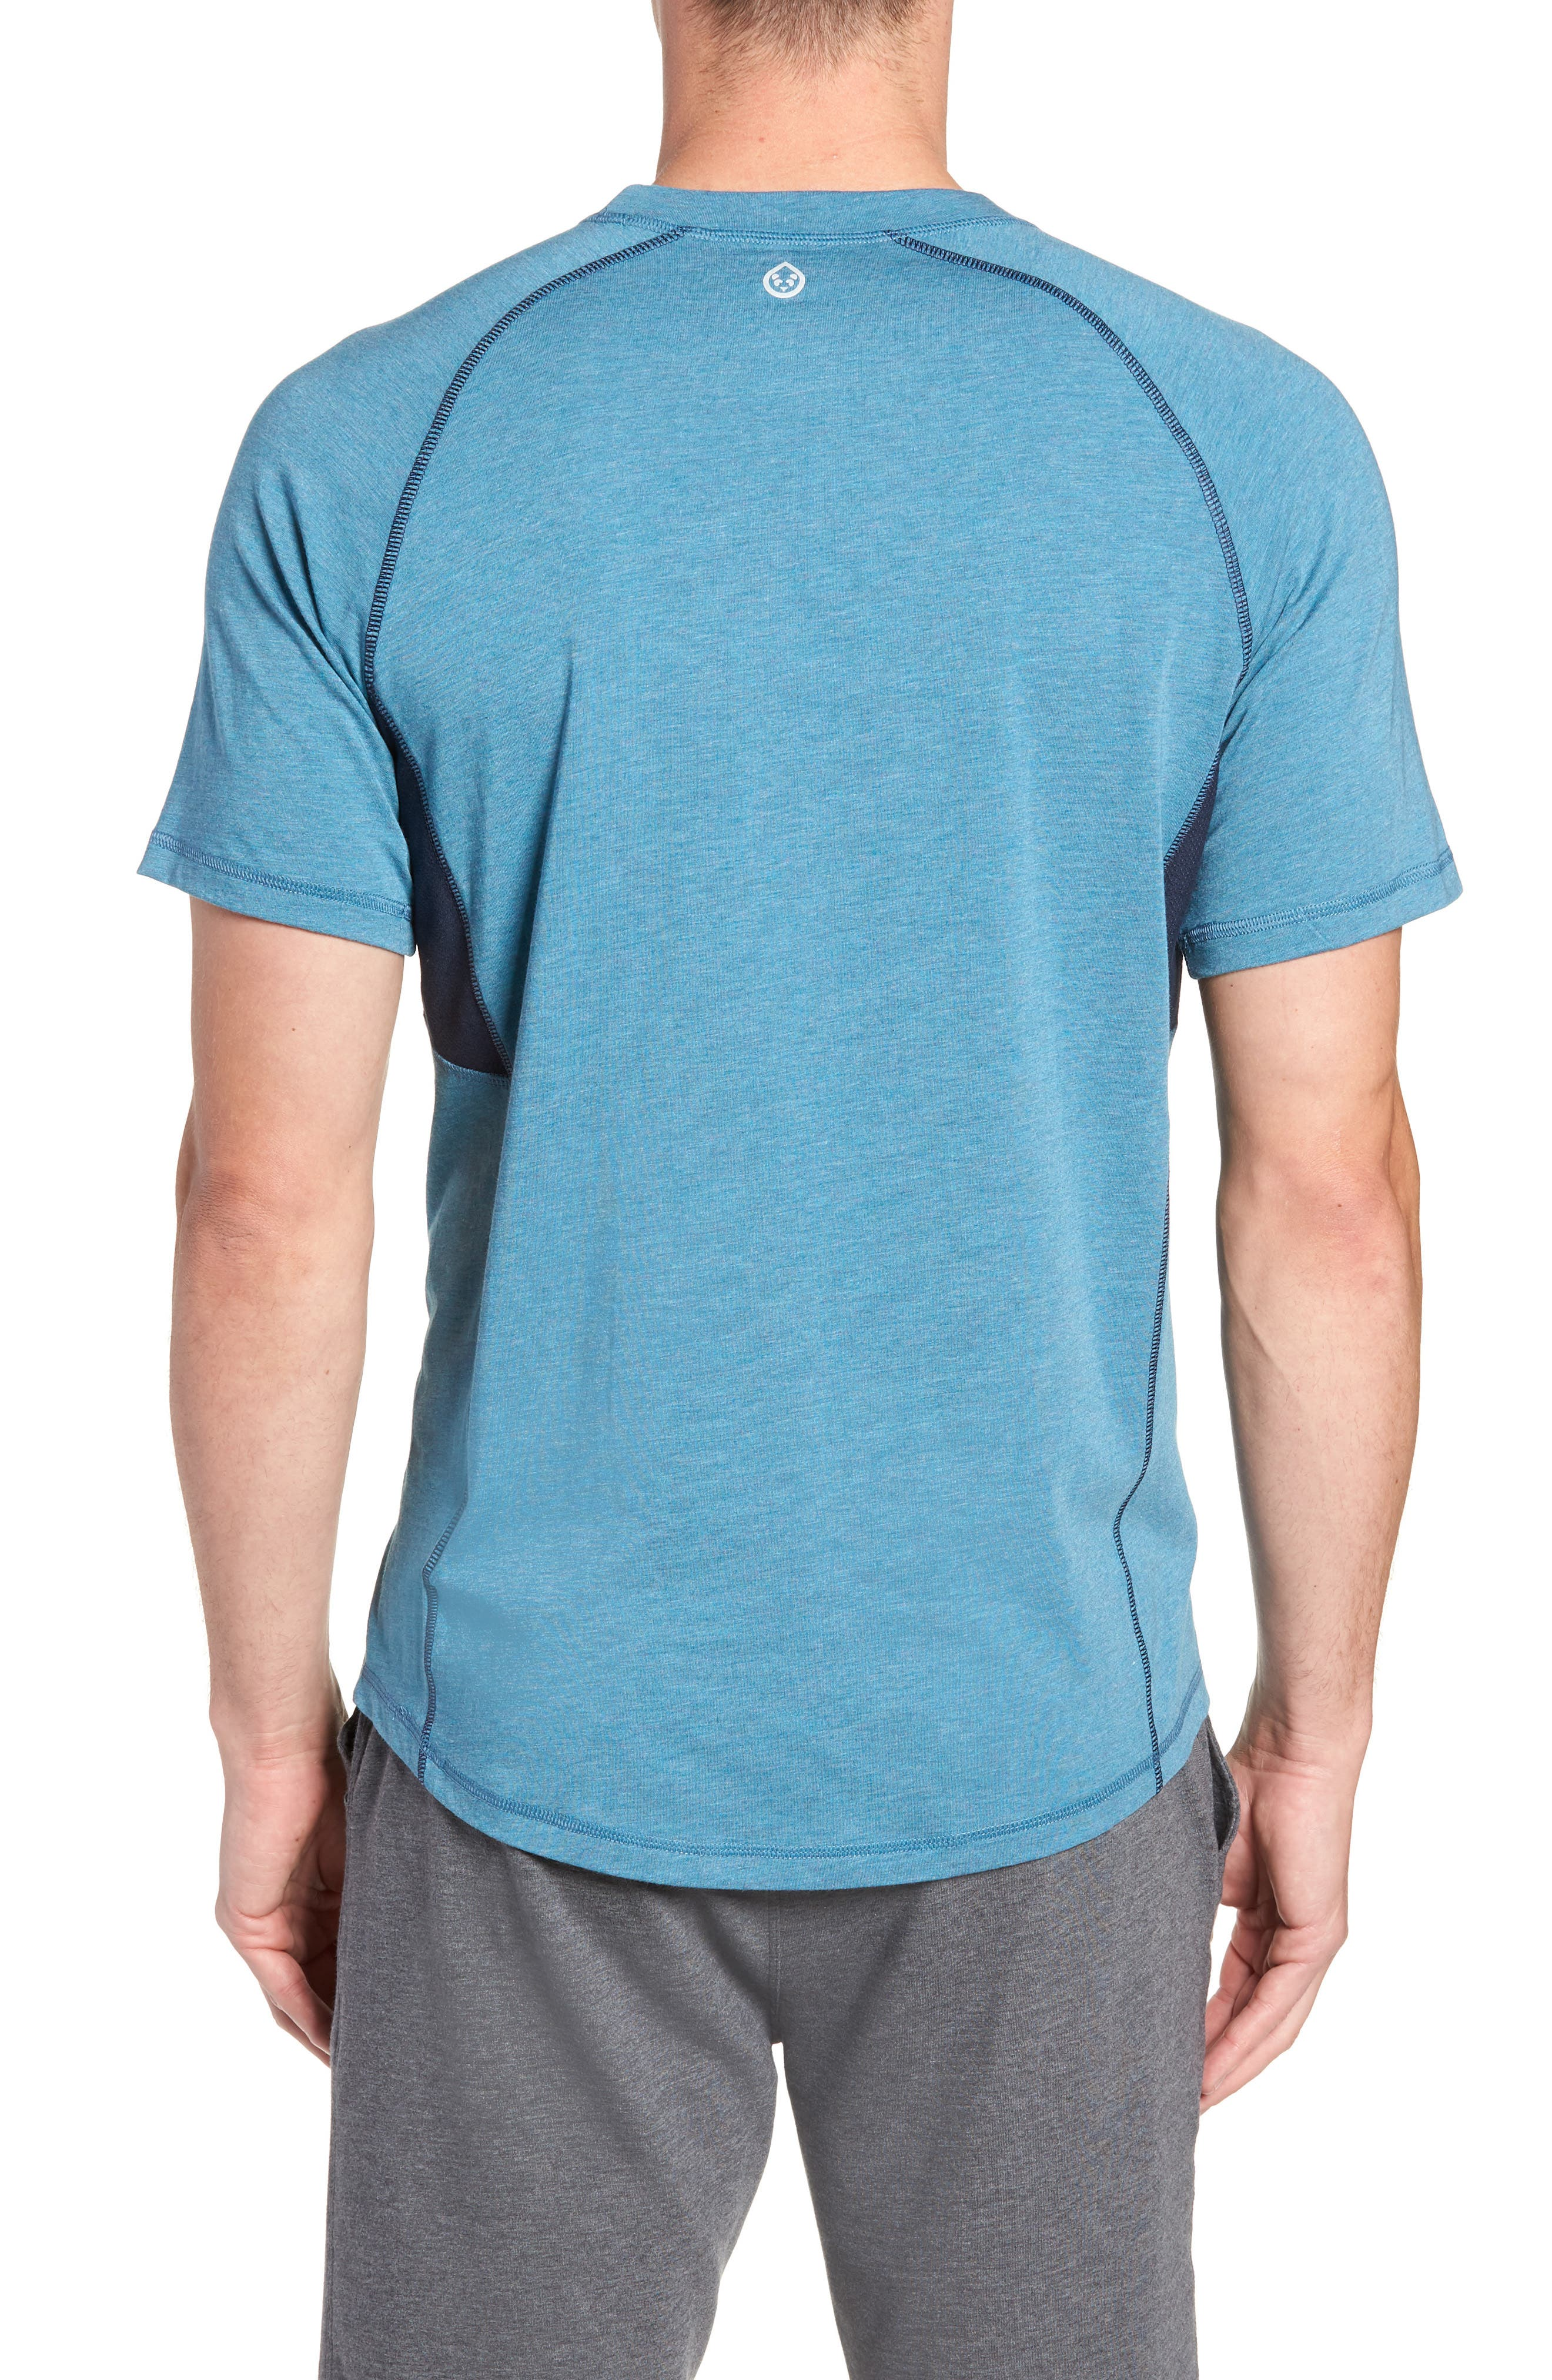 Charge II T-Shirt,                             Alternate thumbnail 2, color,                             Tranquility Sea Heather